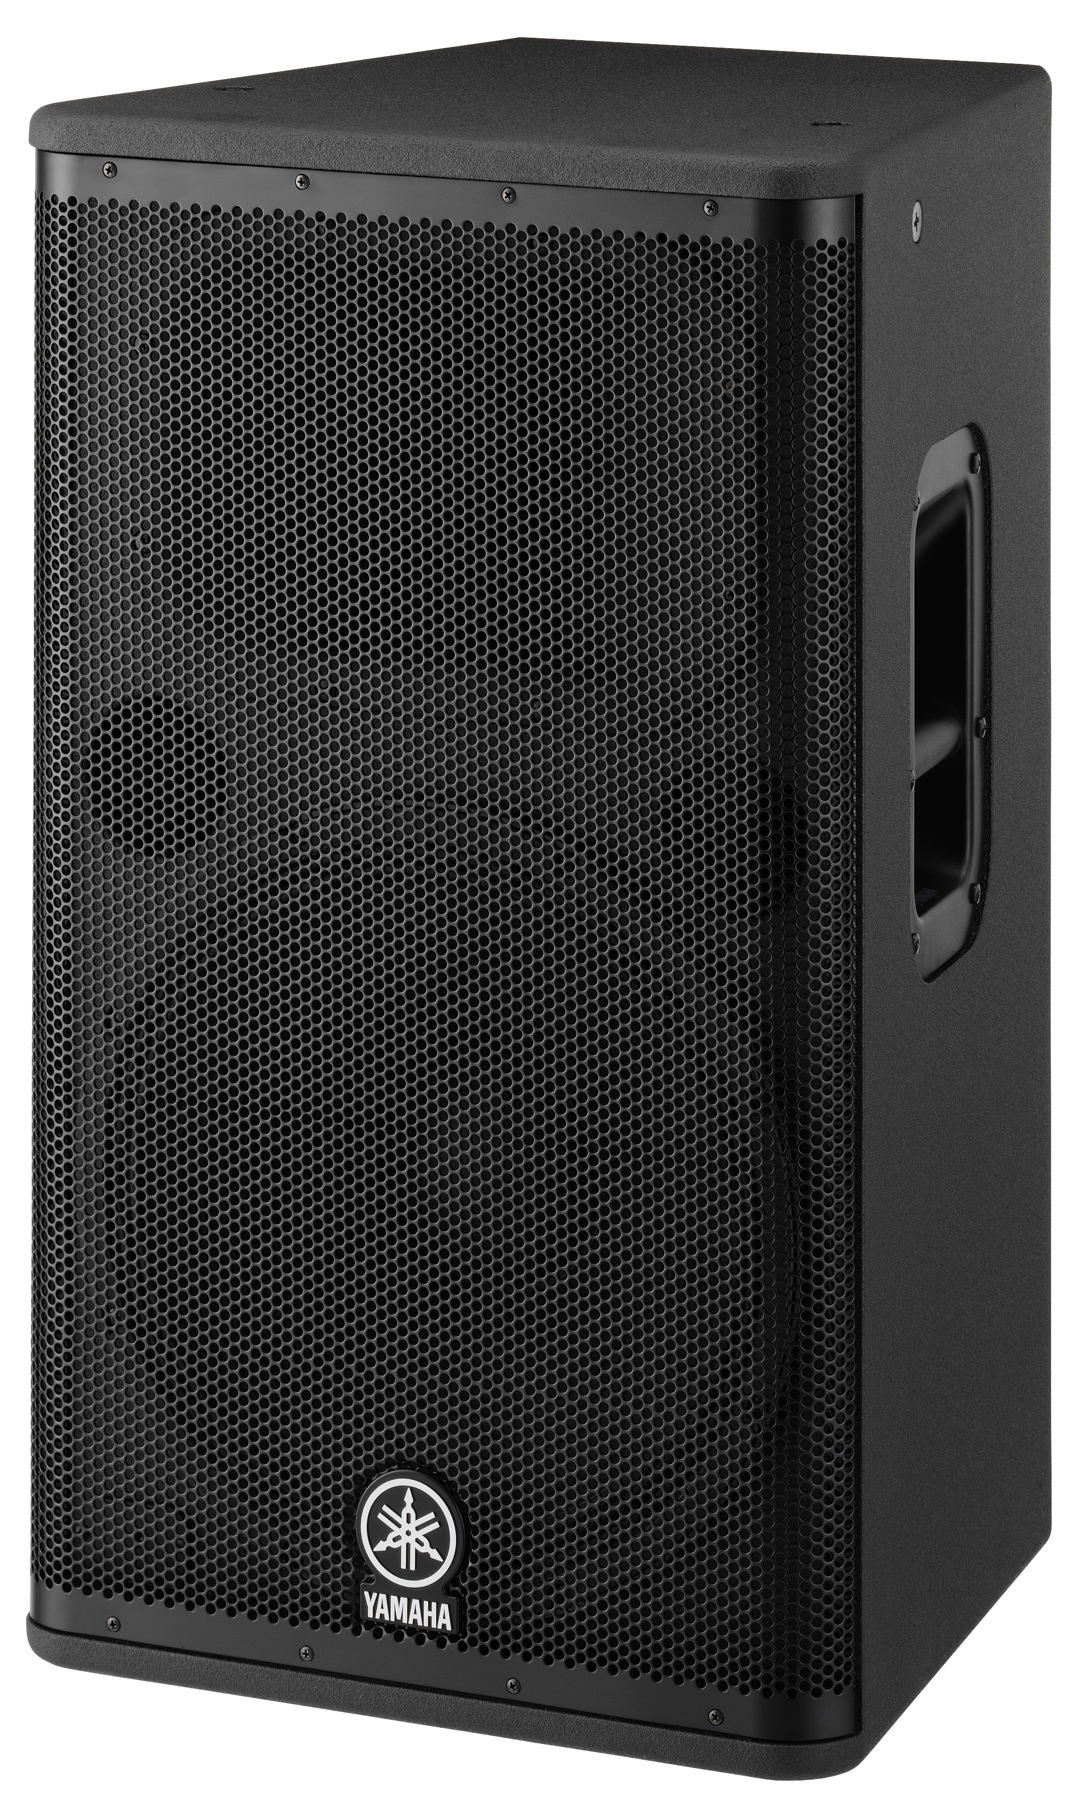 Yamaha dsr115 15 powered speaker for Yamaha powered speakers review